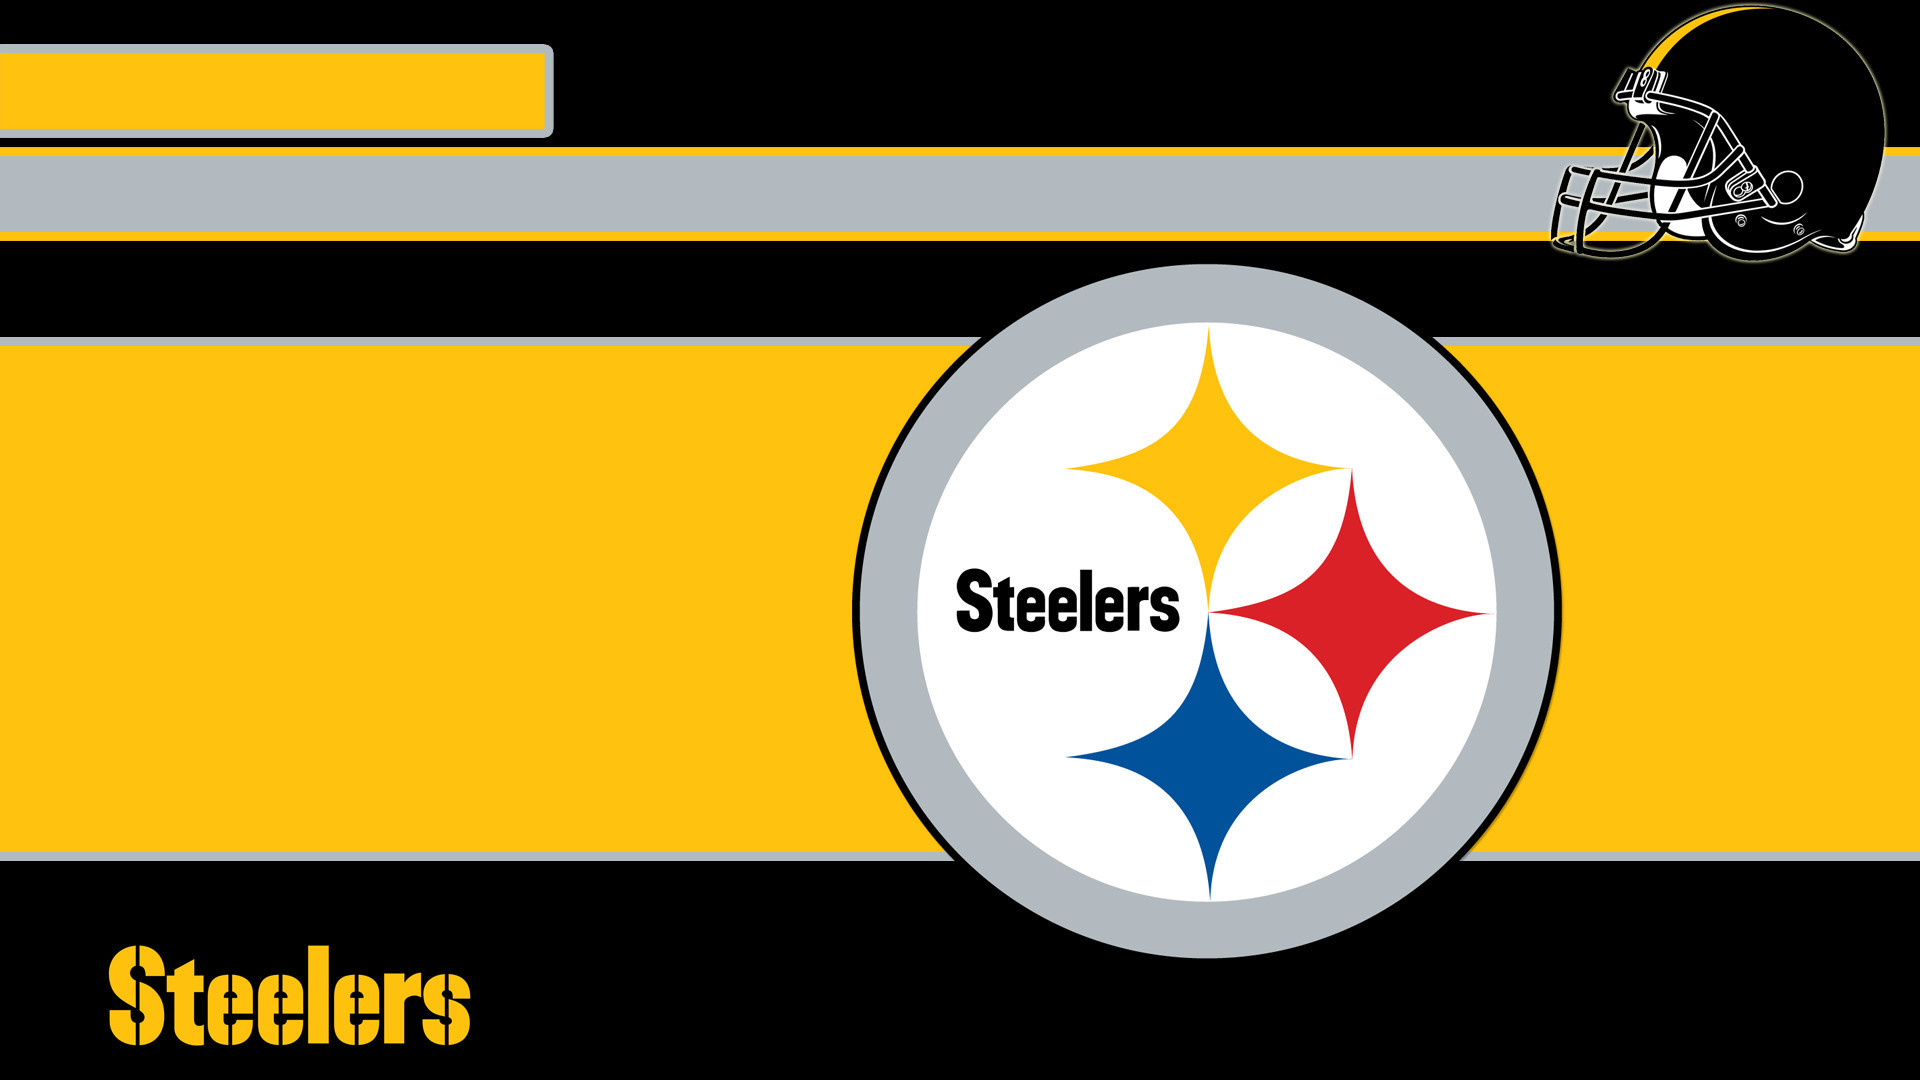 Steelers Girl Iphone Wallpaper New Steelers Wallpapers For Iphone 64 Images